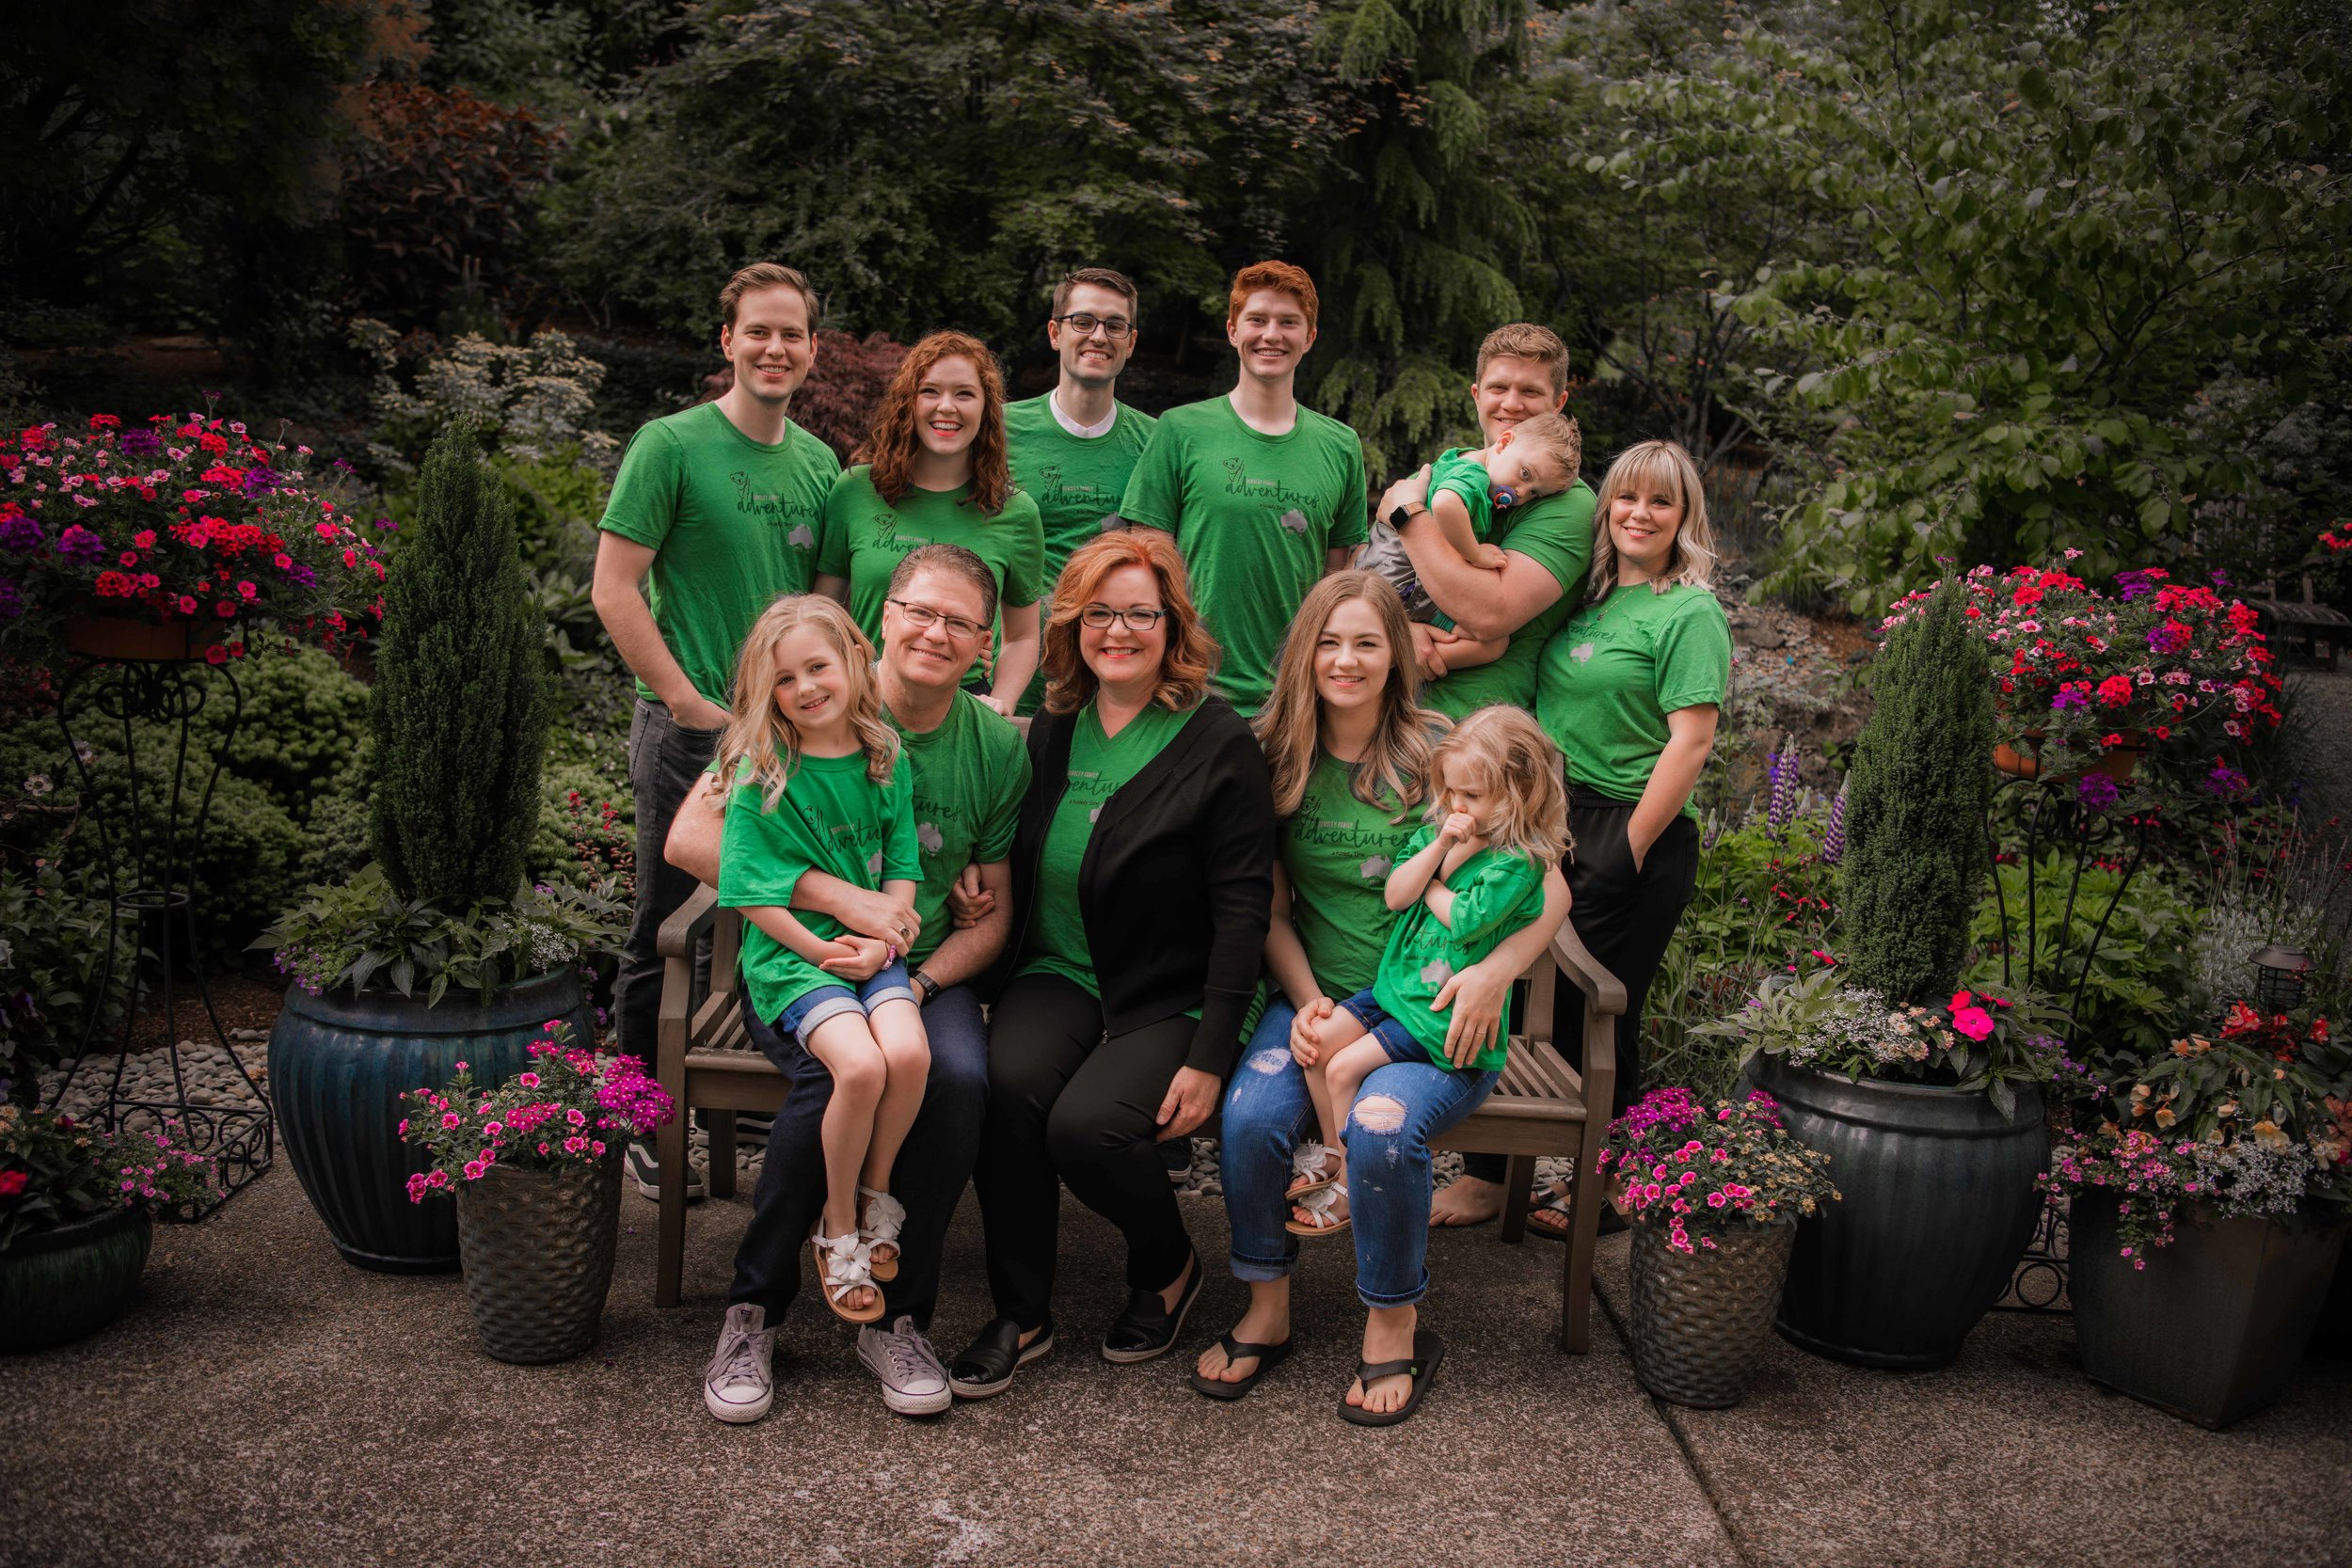 Chelsea Adams Photography Portland Family Photographer